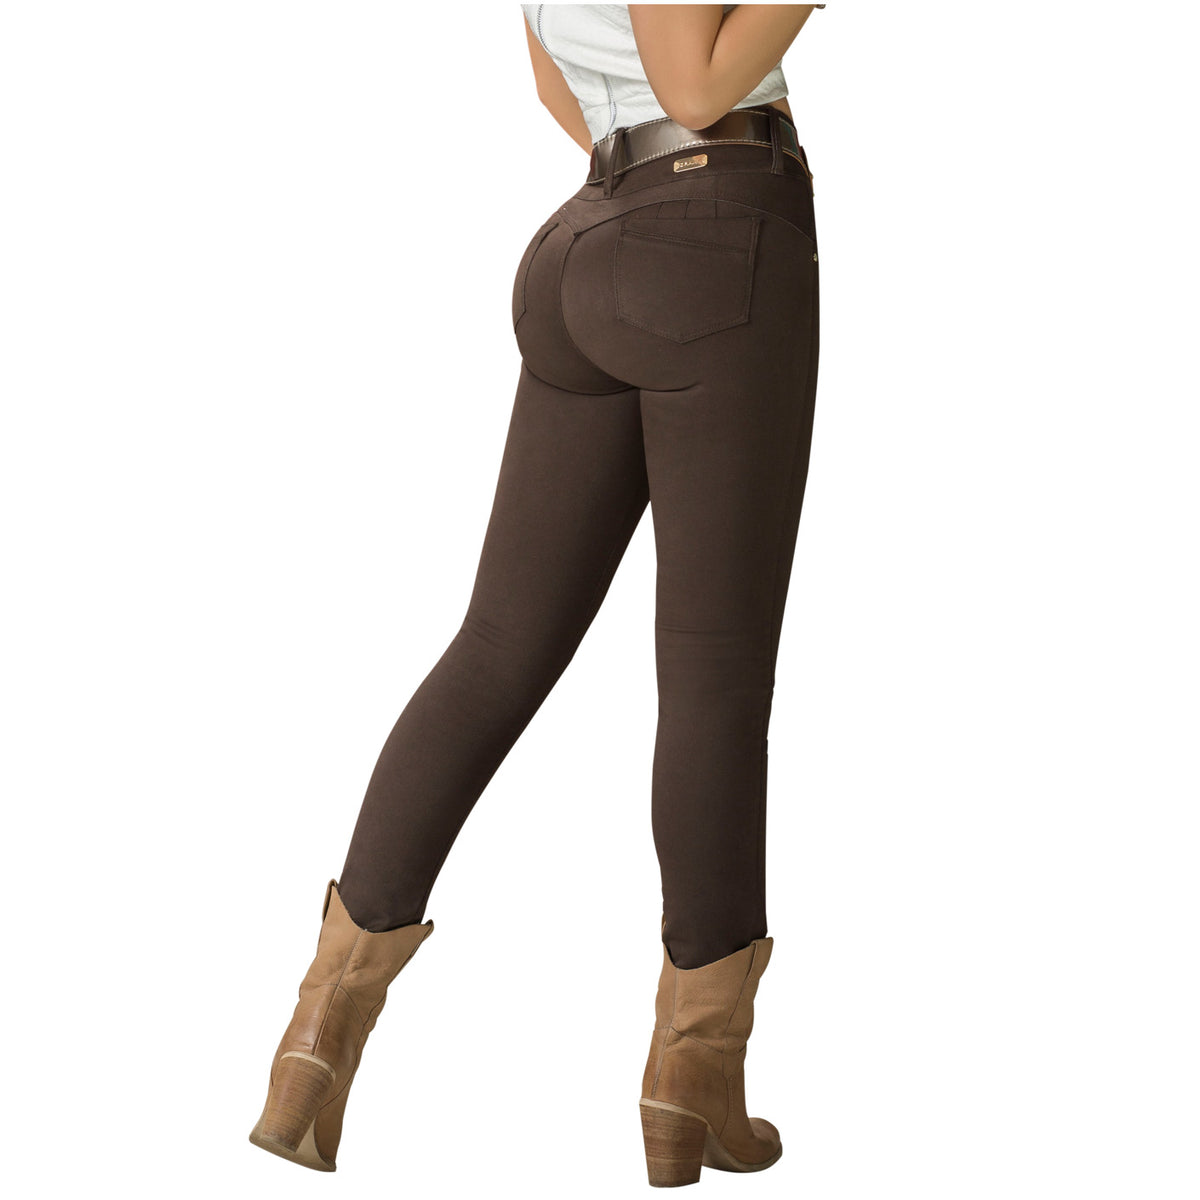 Draxy Women Colombian Sexy Mid Rise Flared Bell Bottom Jeans